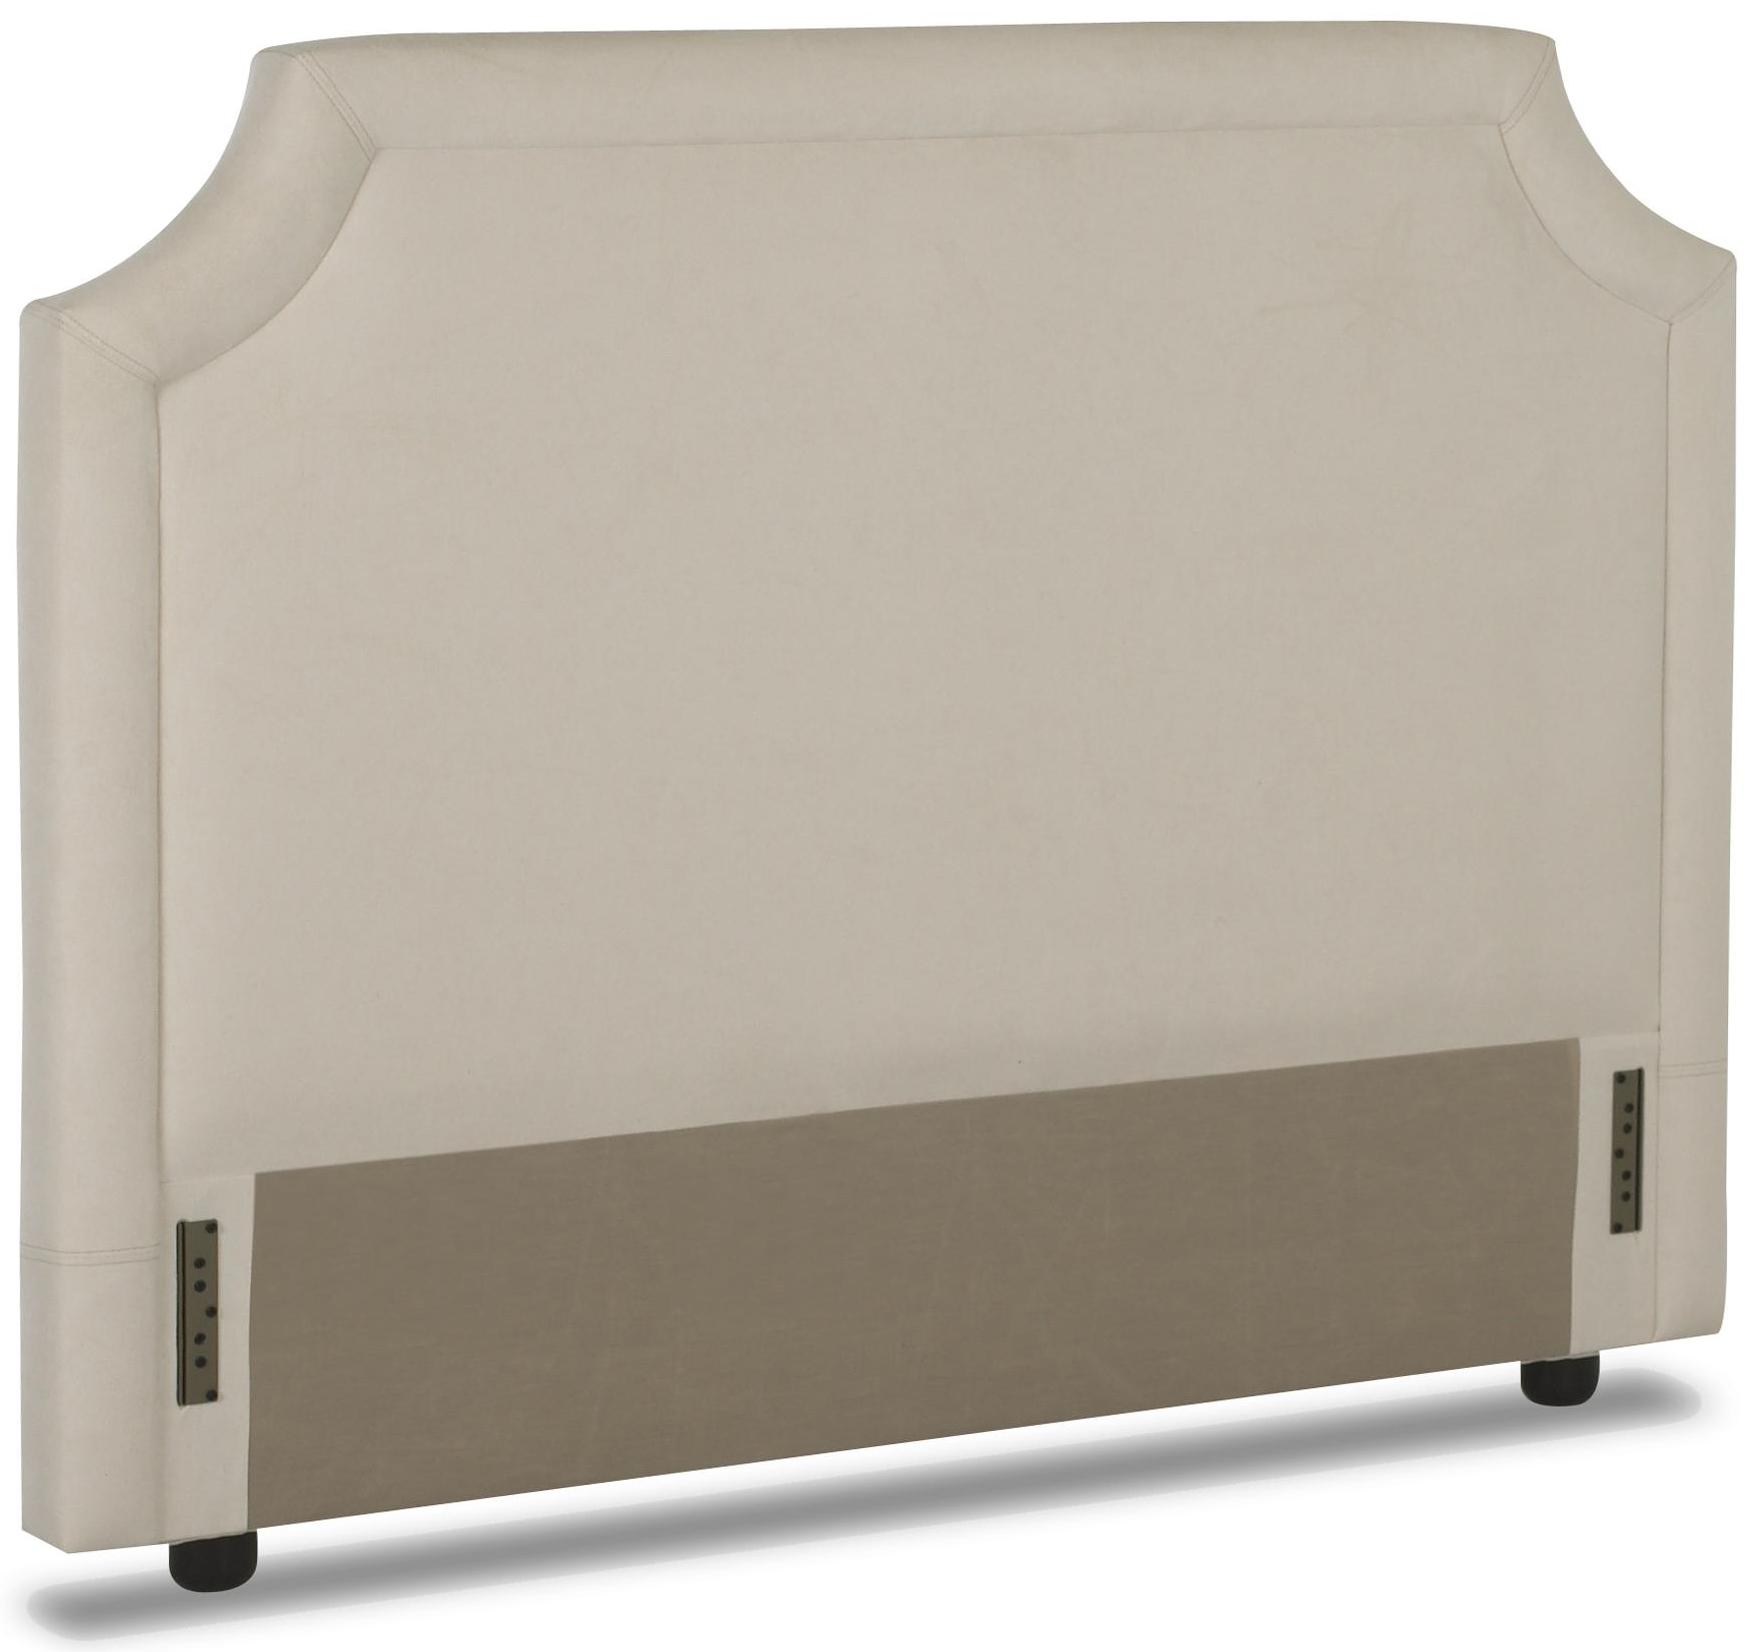 Upholstered Beds and Headboards King Upholstered Headboard by Klaussner at Miller Home